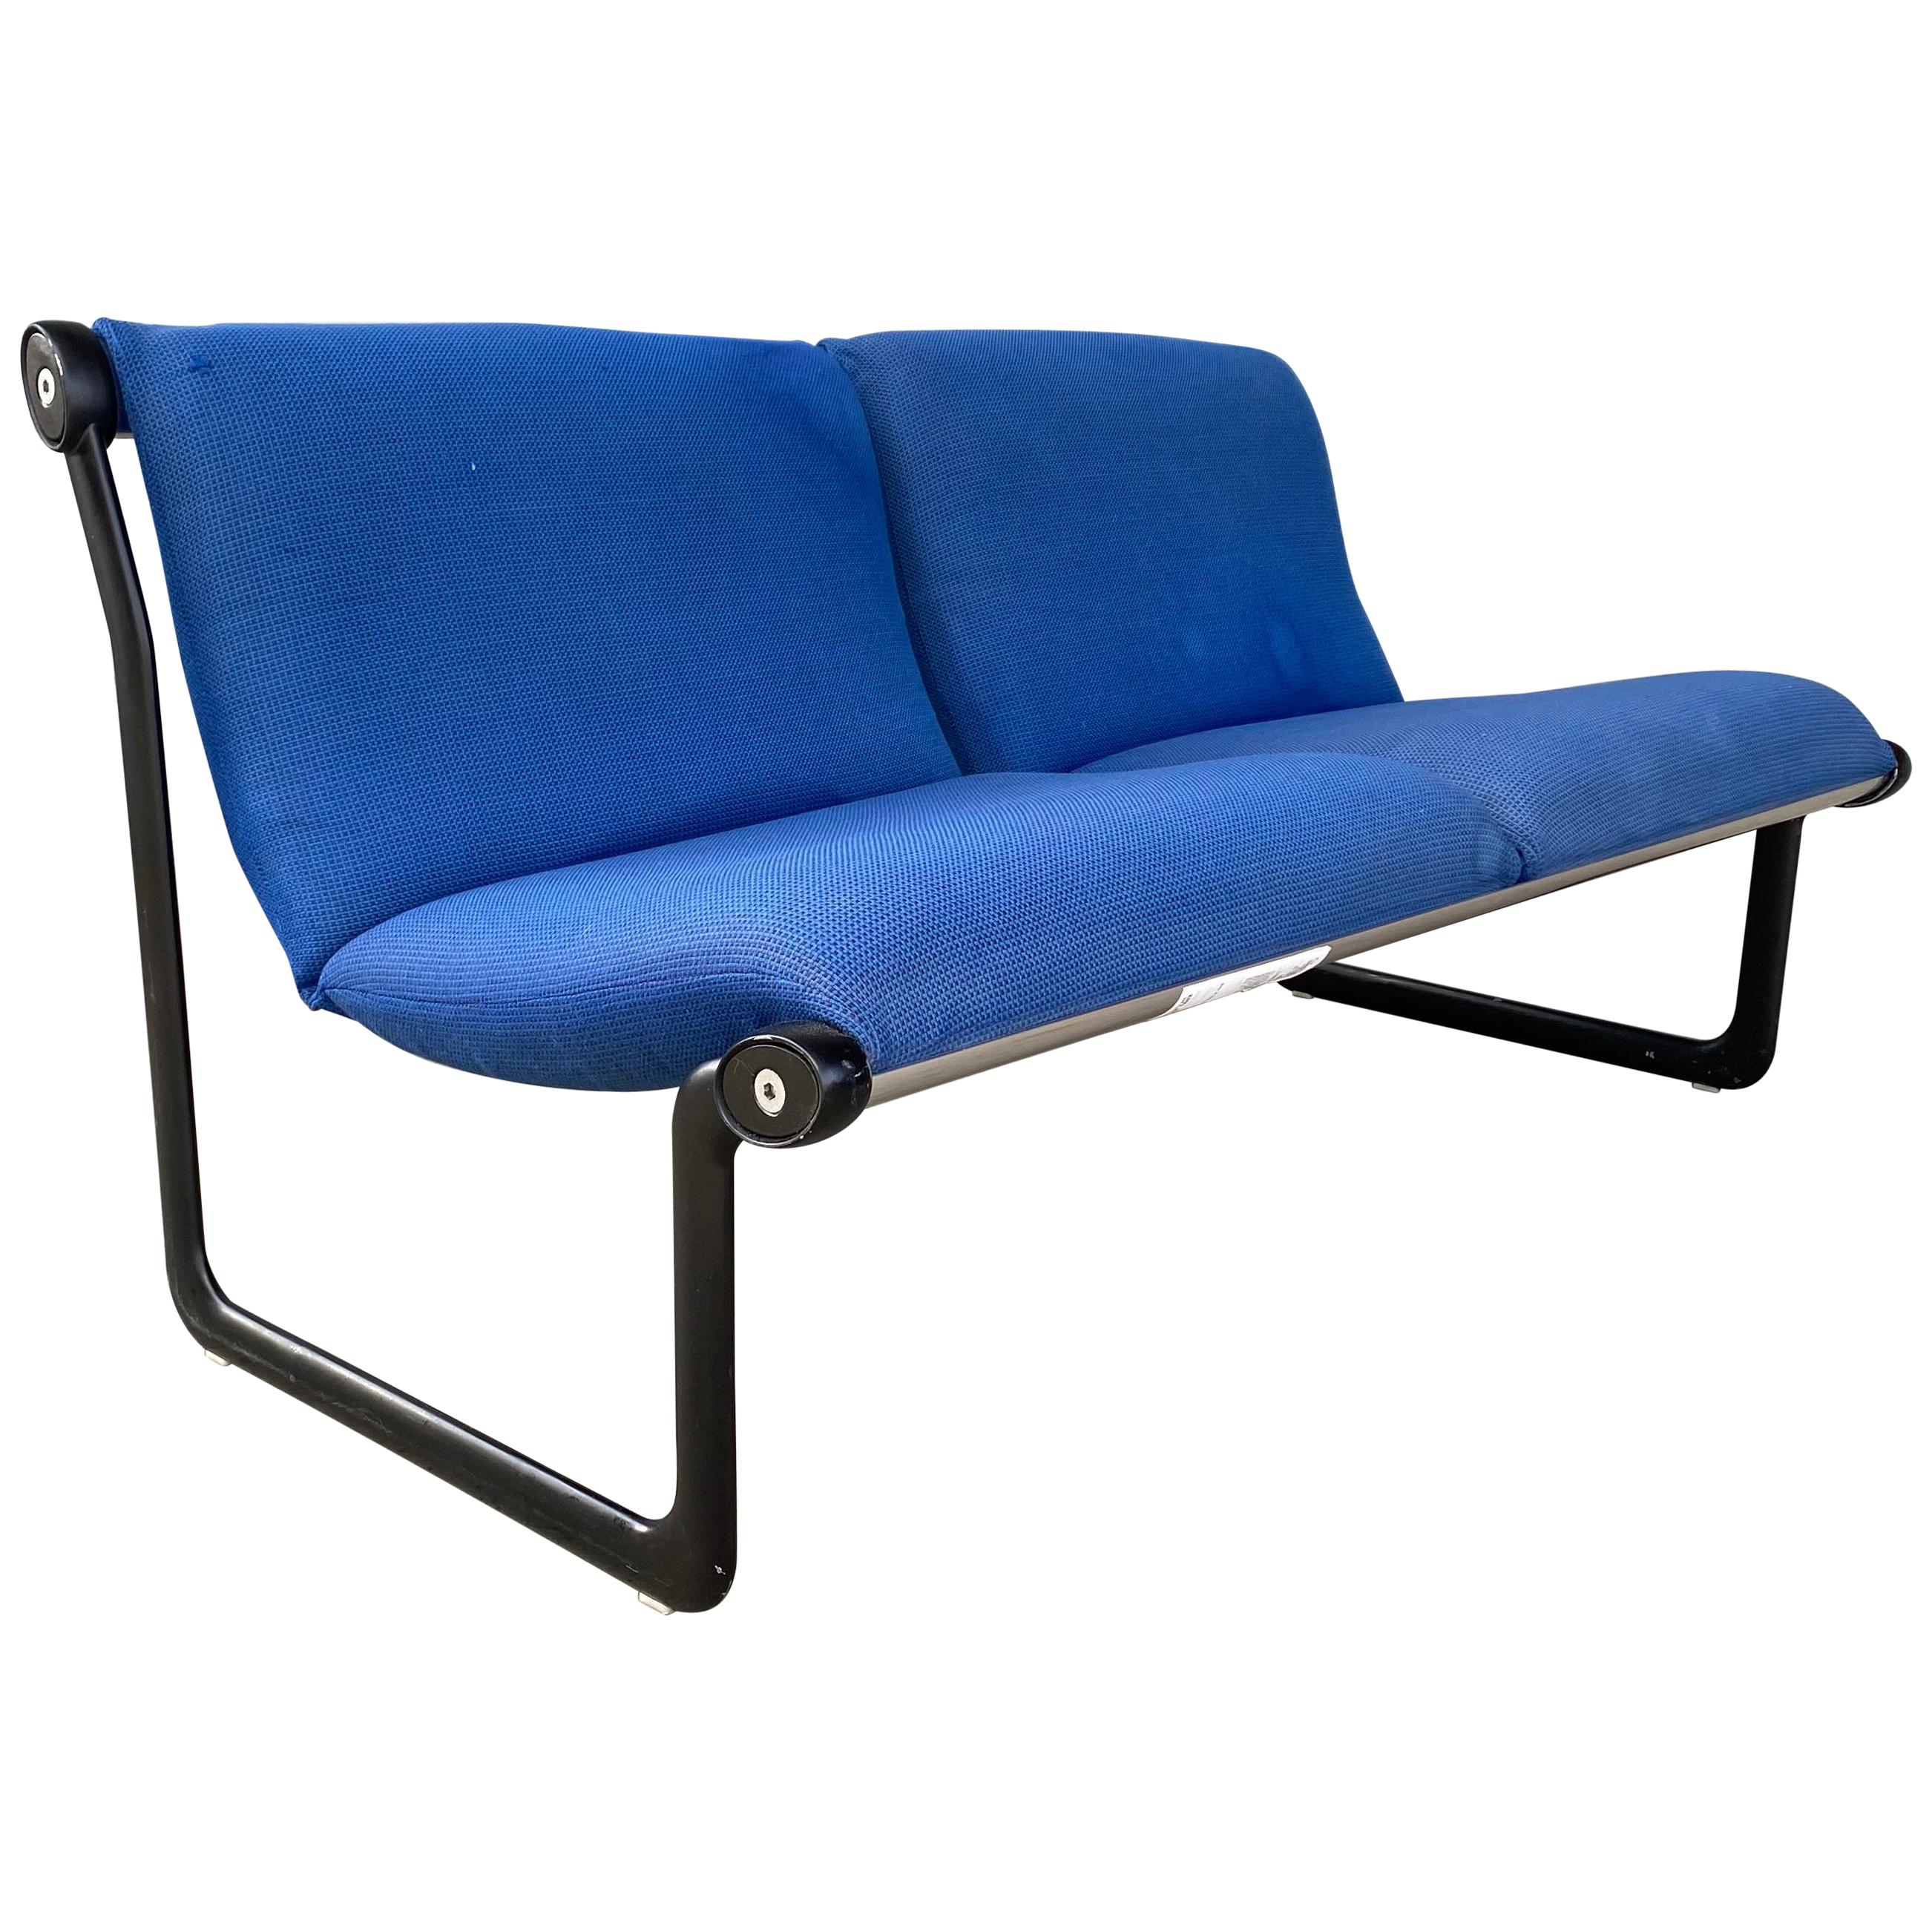 Classic Modernist Two-Seat Sling Sofa by Hannah Morrison for Knoll